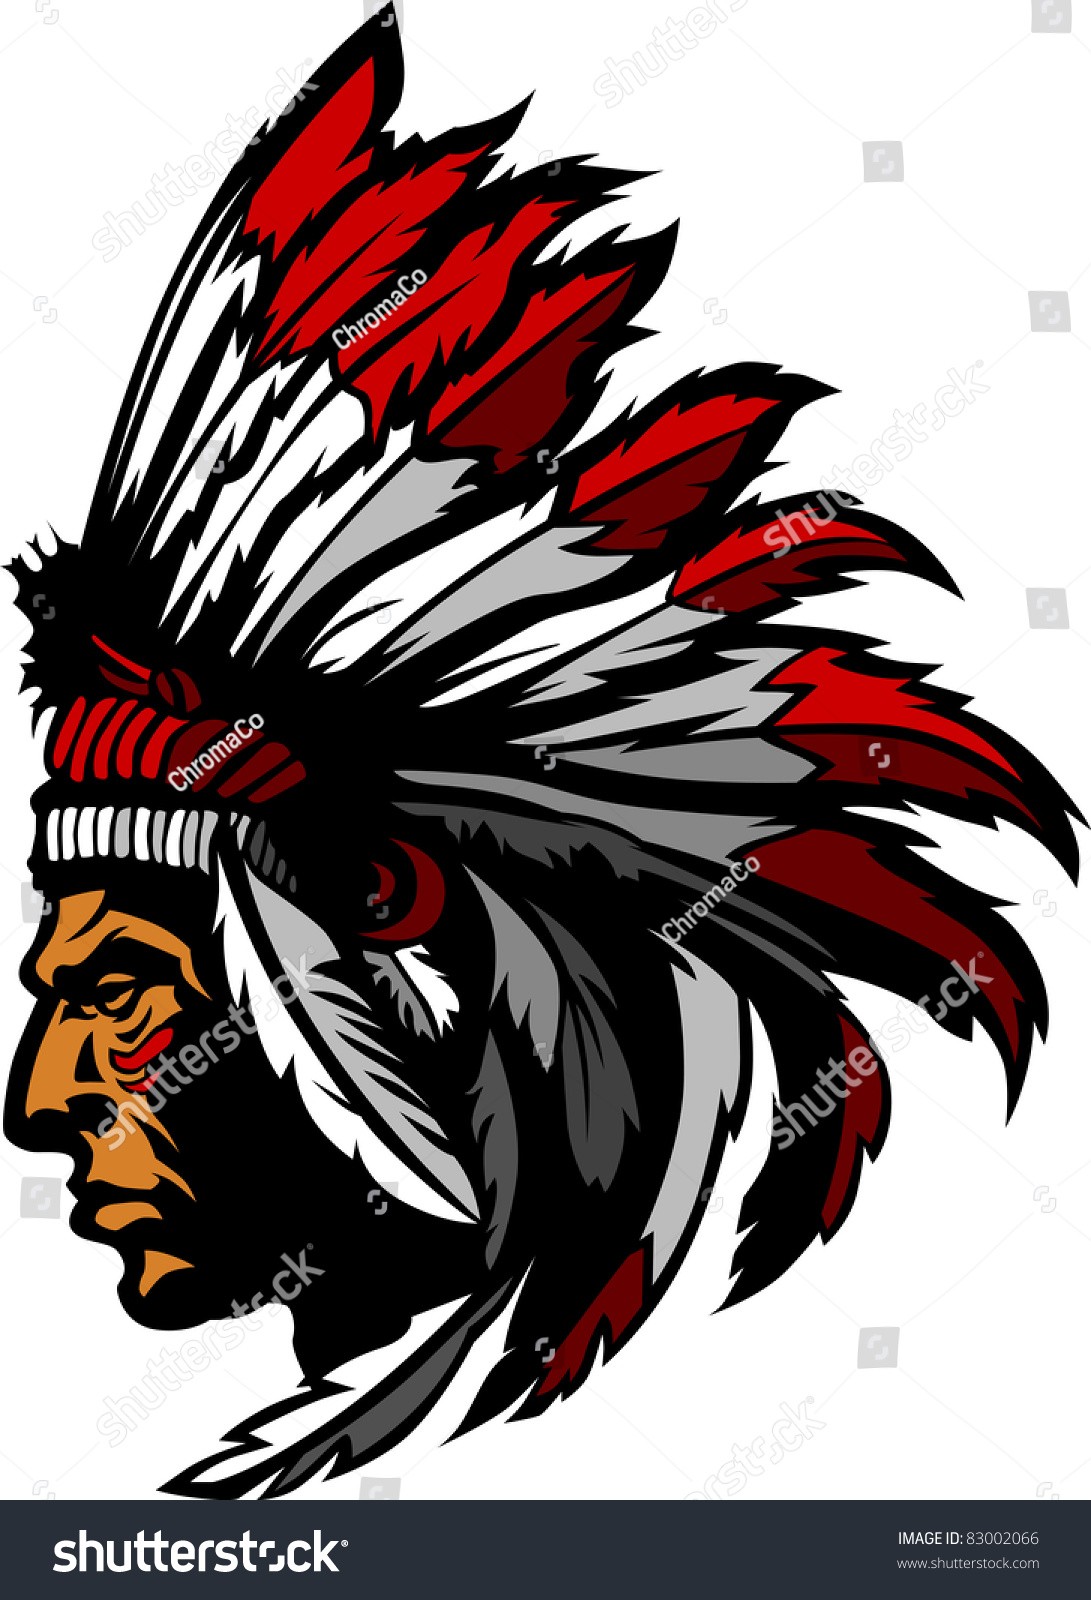 Superb Indian Chief Head #5: Indian Chief Head Graphic